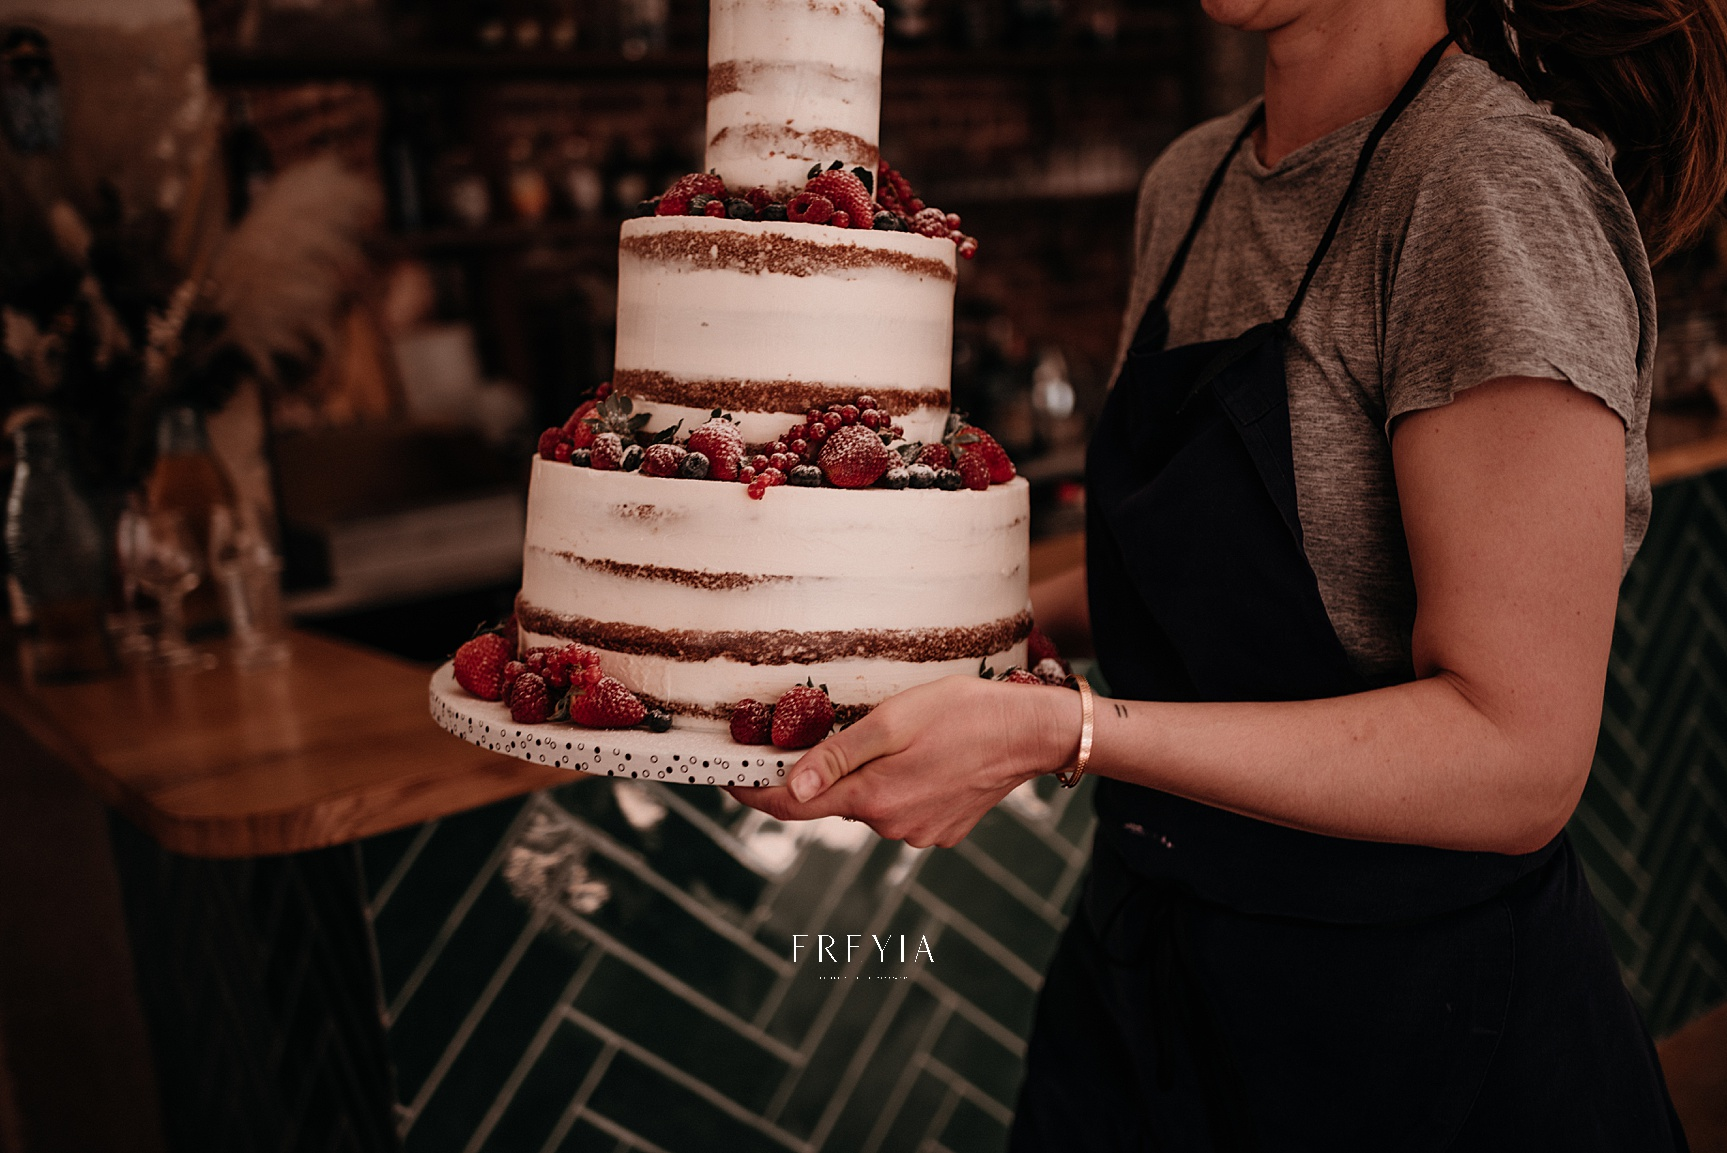 P + F |  mariage reportage alternatif moody intime vintage naturel boho boheme |  PHOTOGRAPHE mariage PARIS france destination  | FREYIA photography_-189.jpg